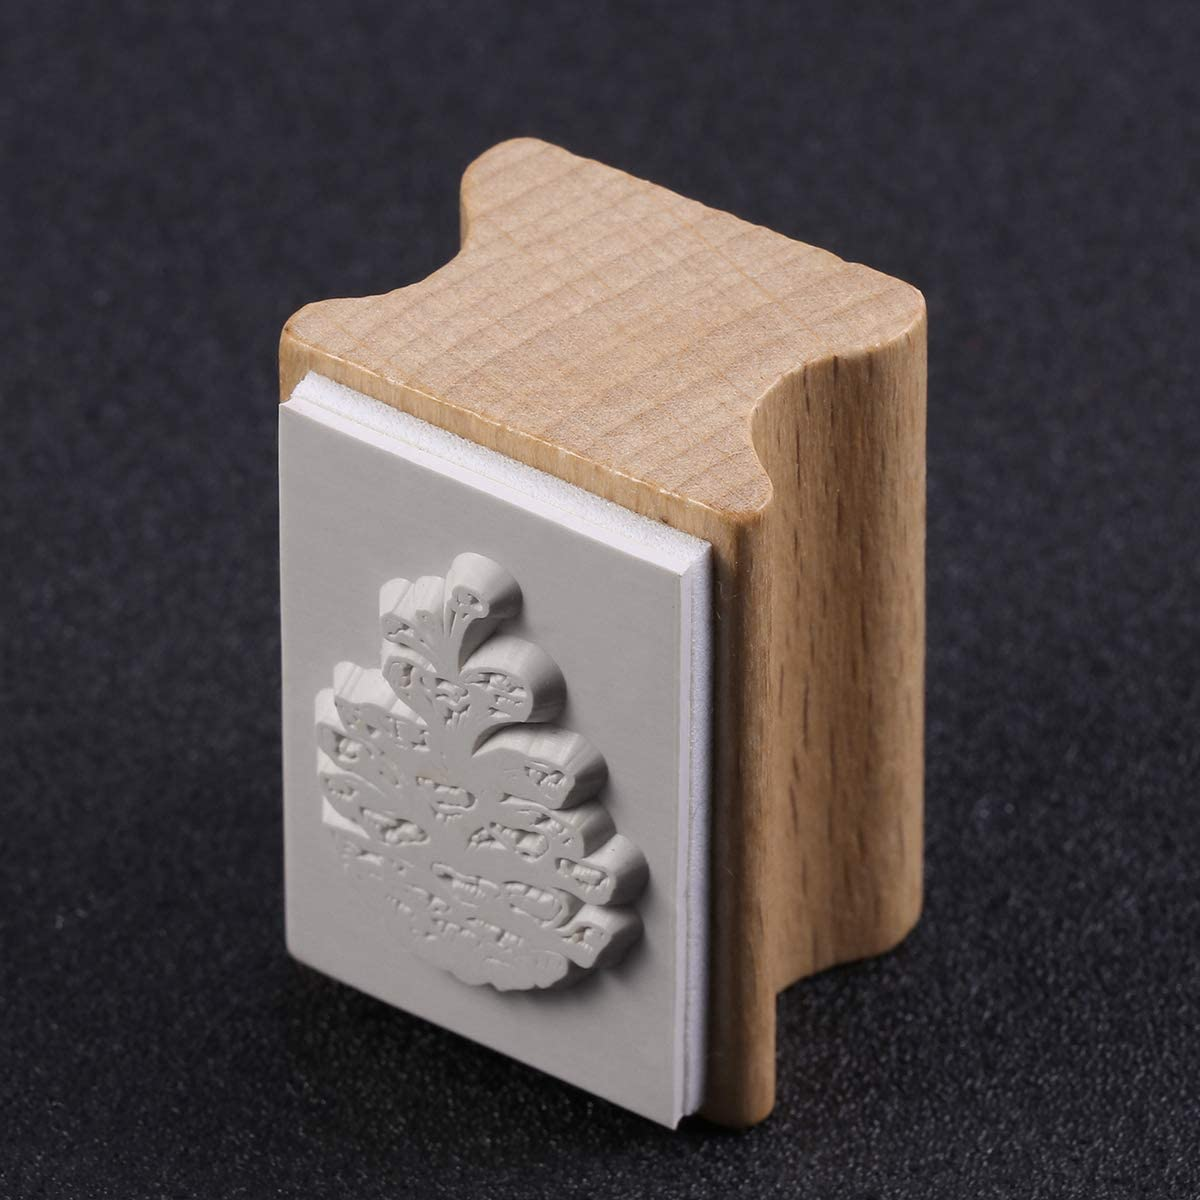 KESYOO Wooden Christmas Stamper Hand Account Diary Stamp Rectangle Wood Stamper Socks Patterns Seal Stamper Socks Supplies